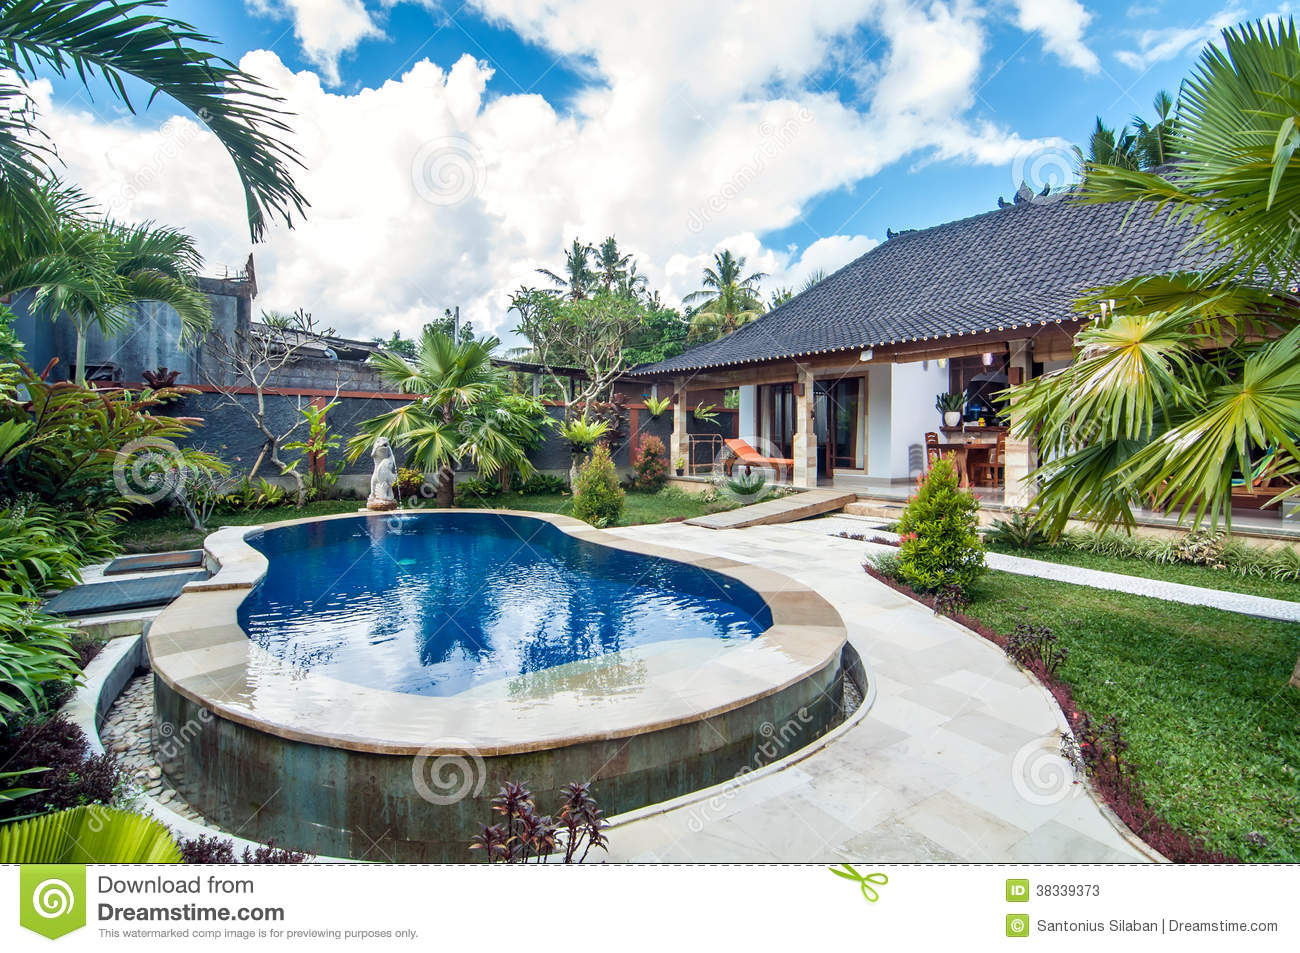 Luxury Villa With Pool Outdoor Stock s Image